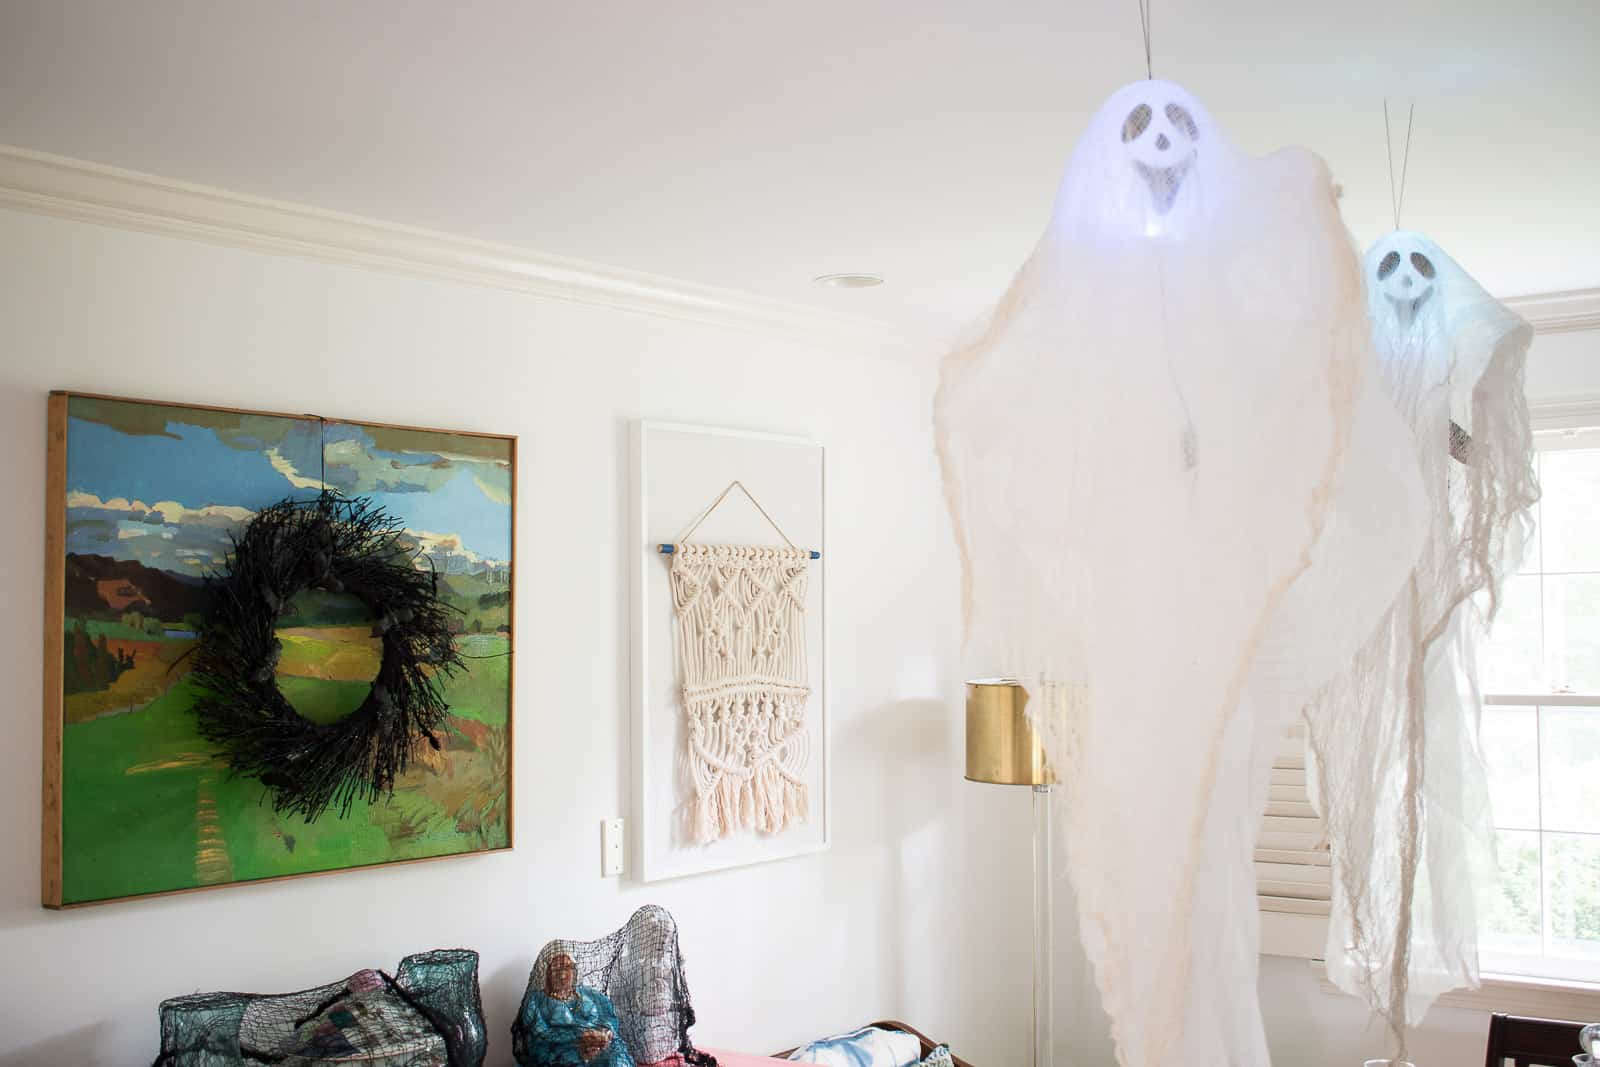 gauzy ghost hanging from ceiling